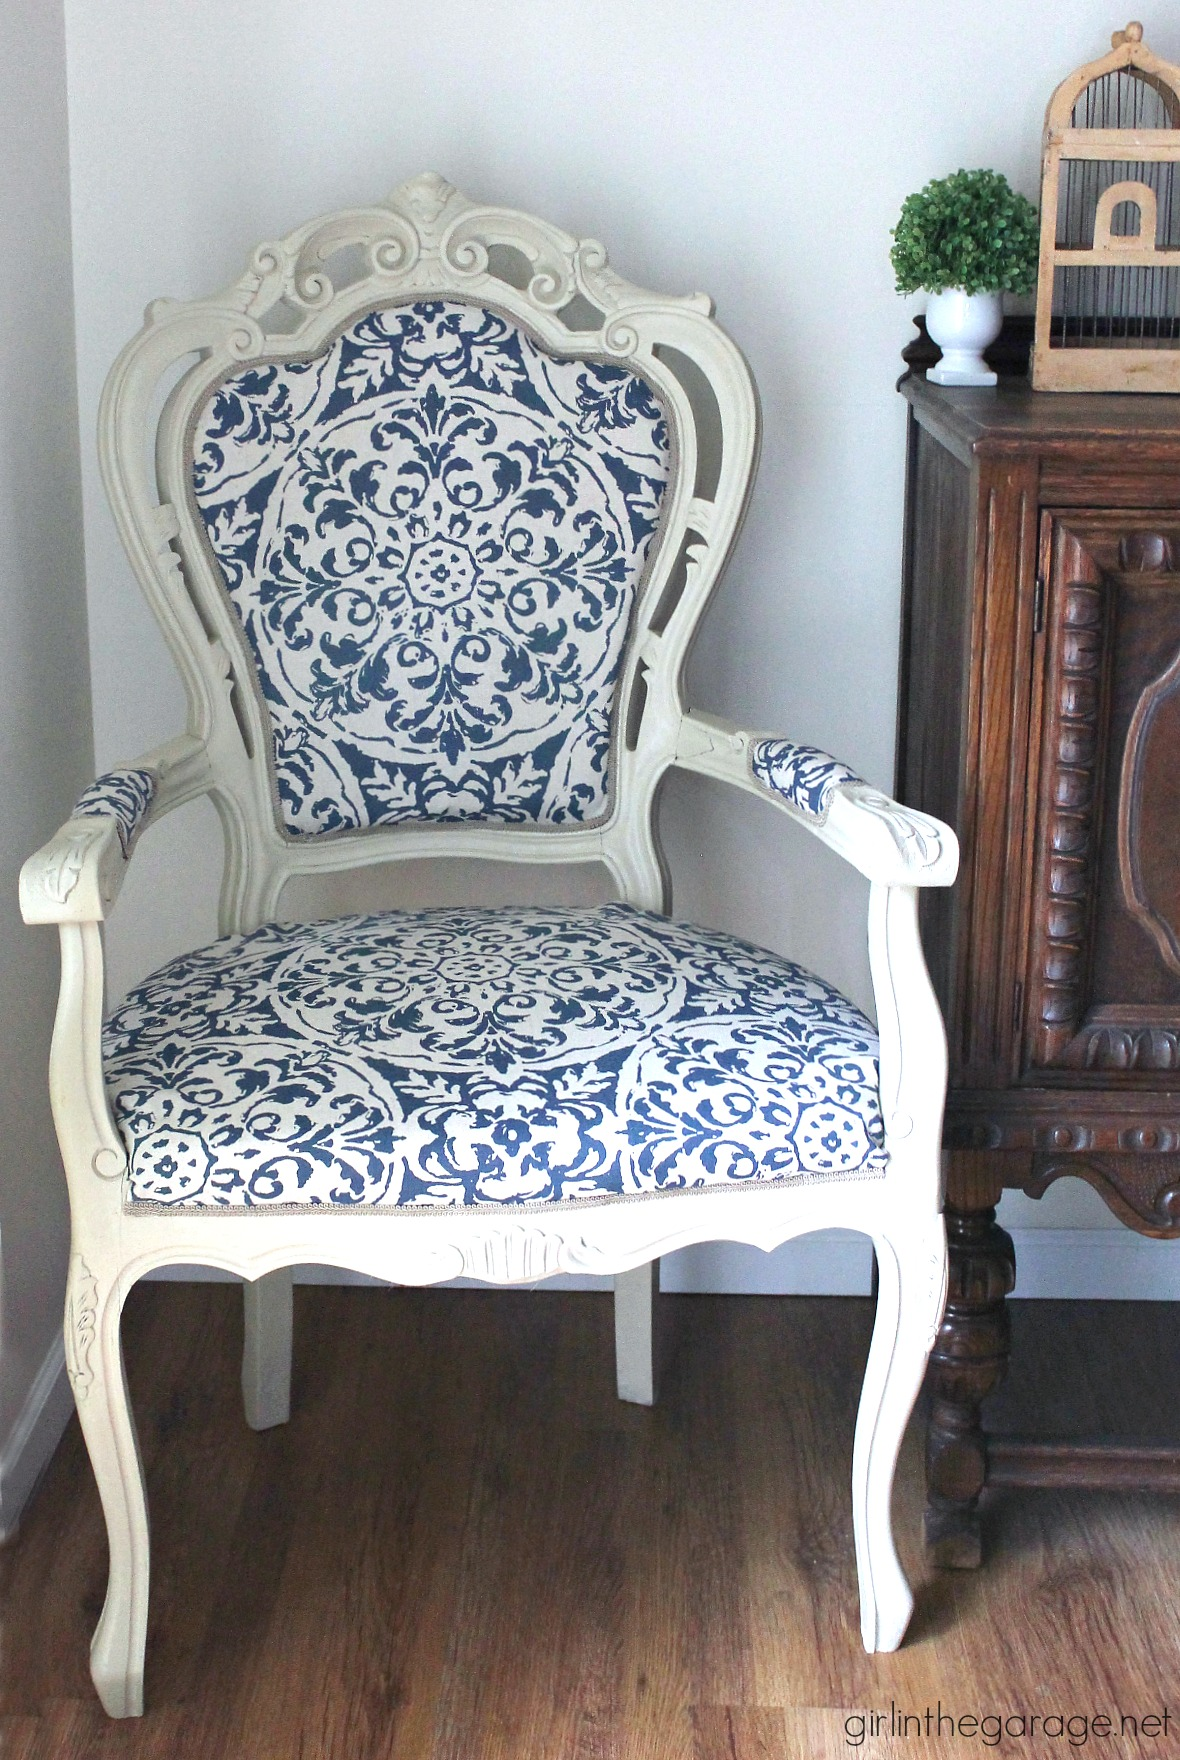 The Throne Chair  DIY Reupholstered Chair Makeover  And Being Brave  Girl in the Garage